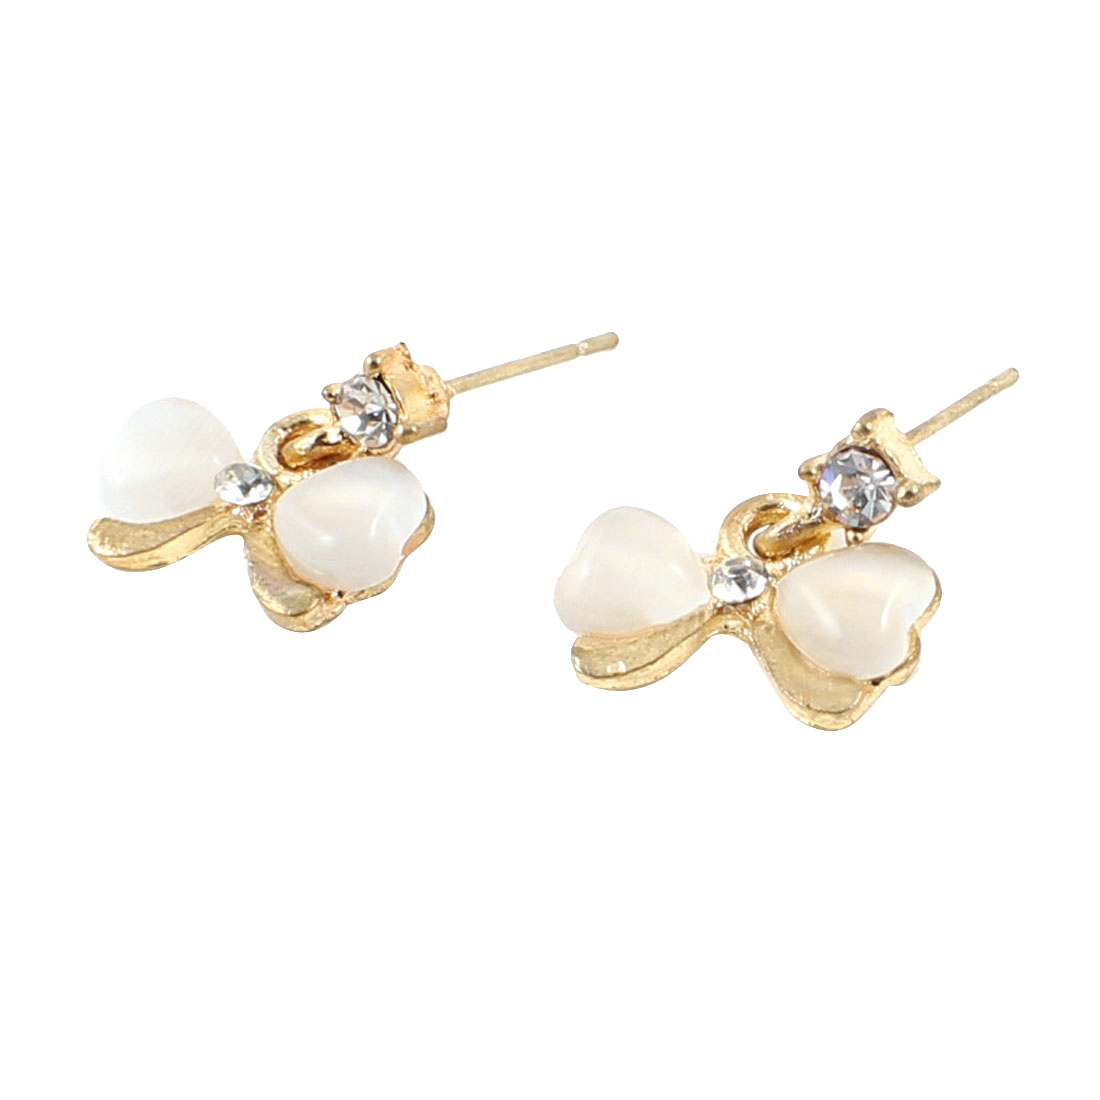 Pair Ladies Faux Pearl Decor Champagne Color Bowtie Ear Nail Stud Earrings